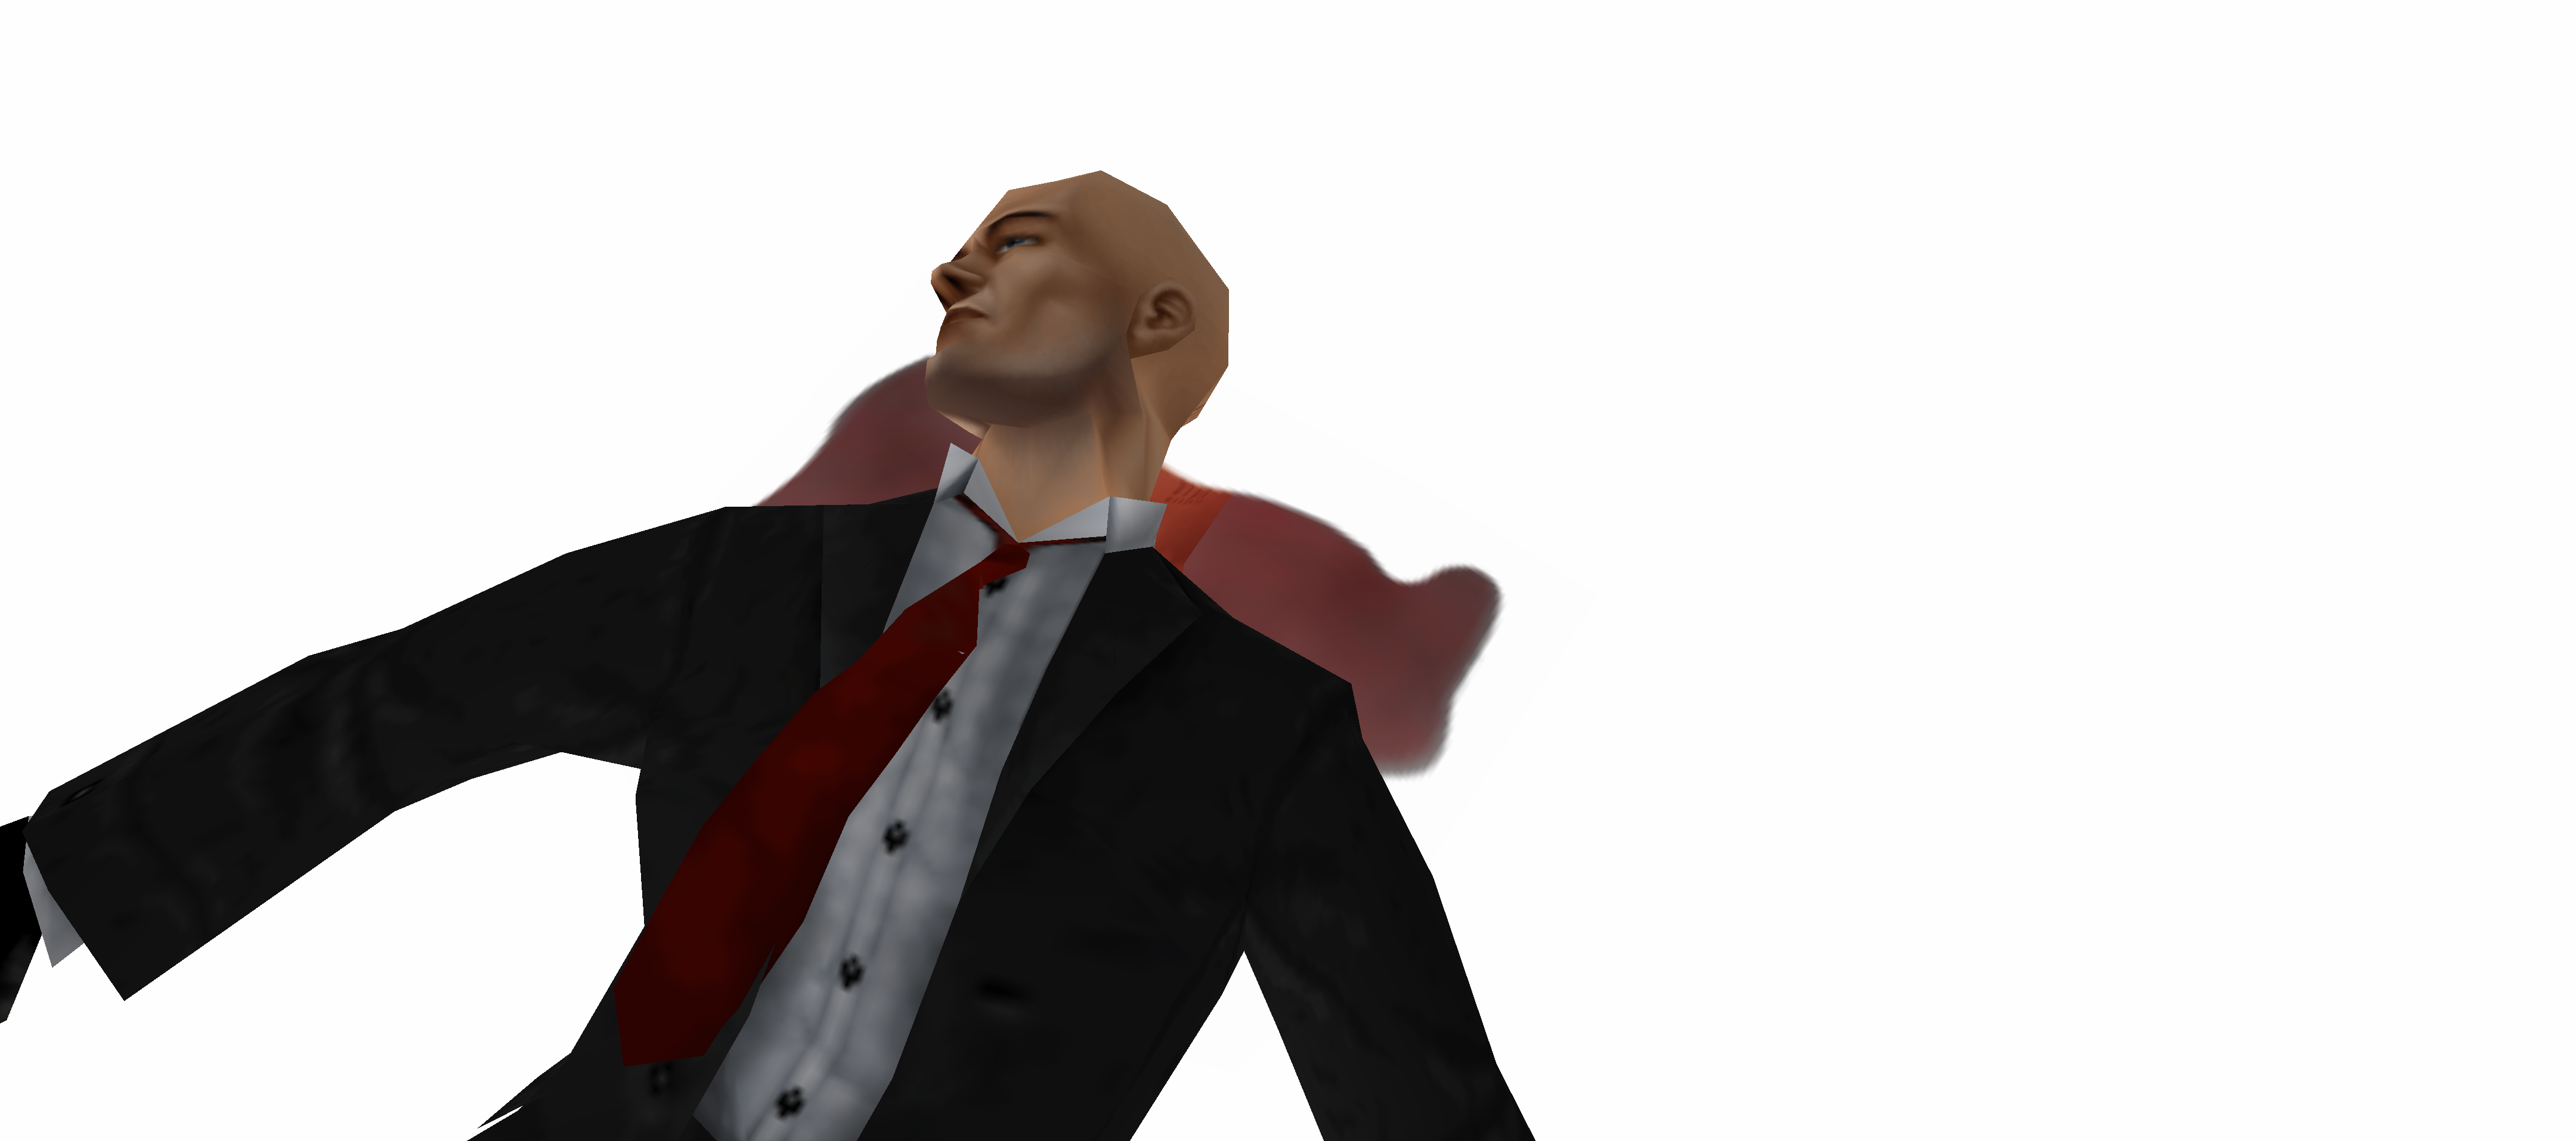 Hitman: codename 47 pc review and full download | old pc gaming.